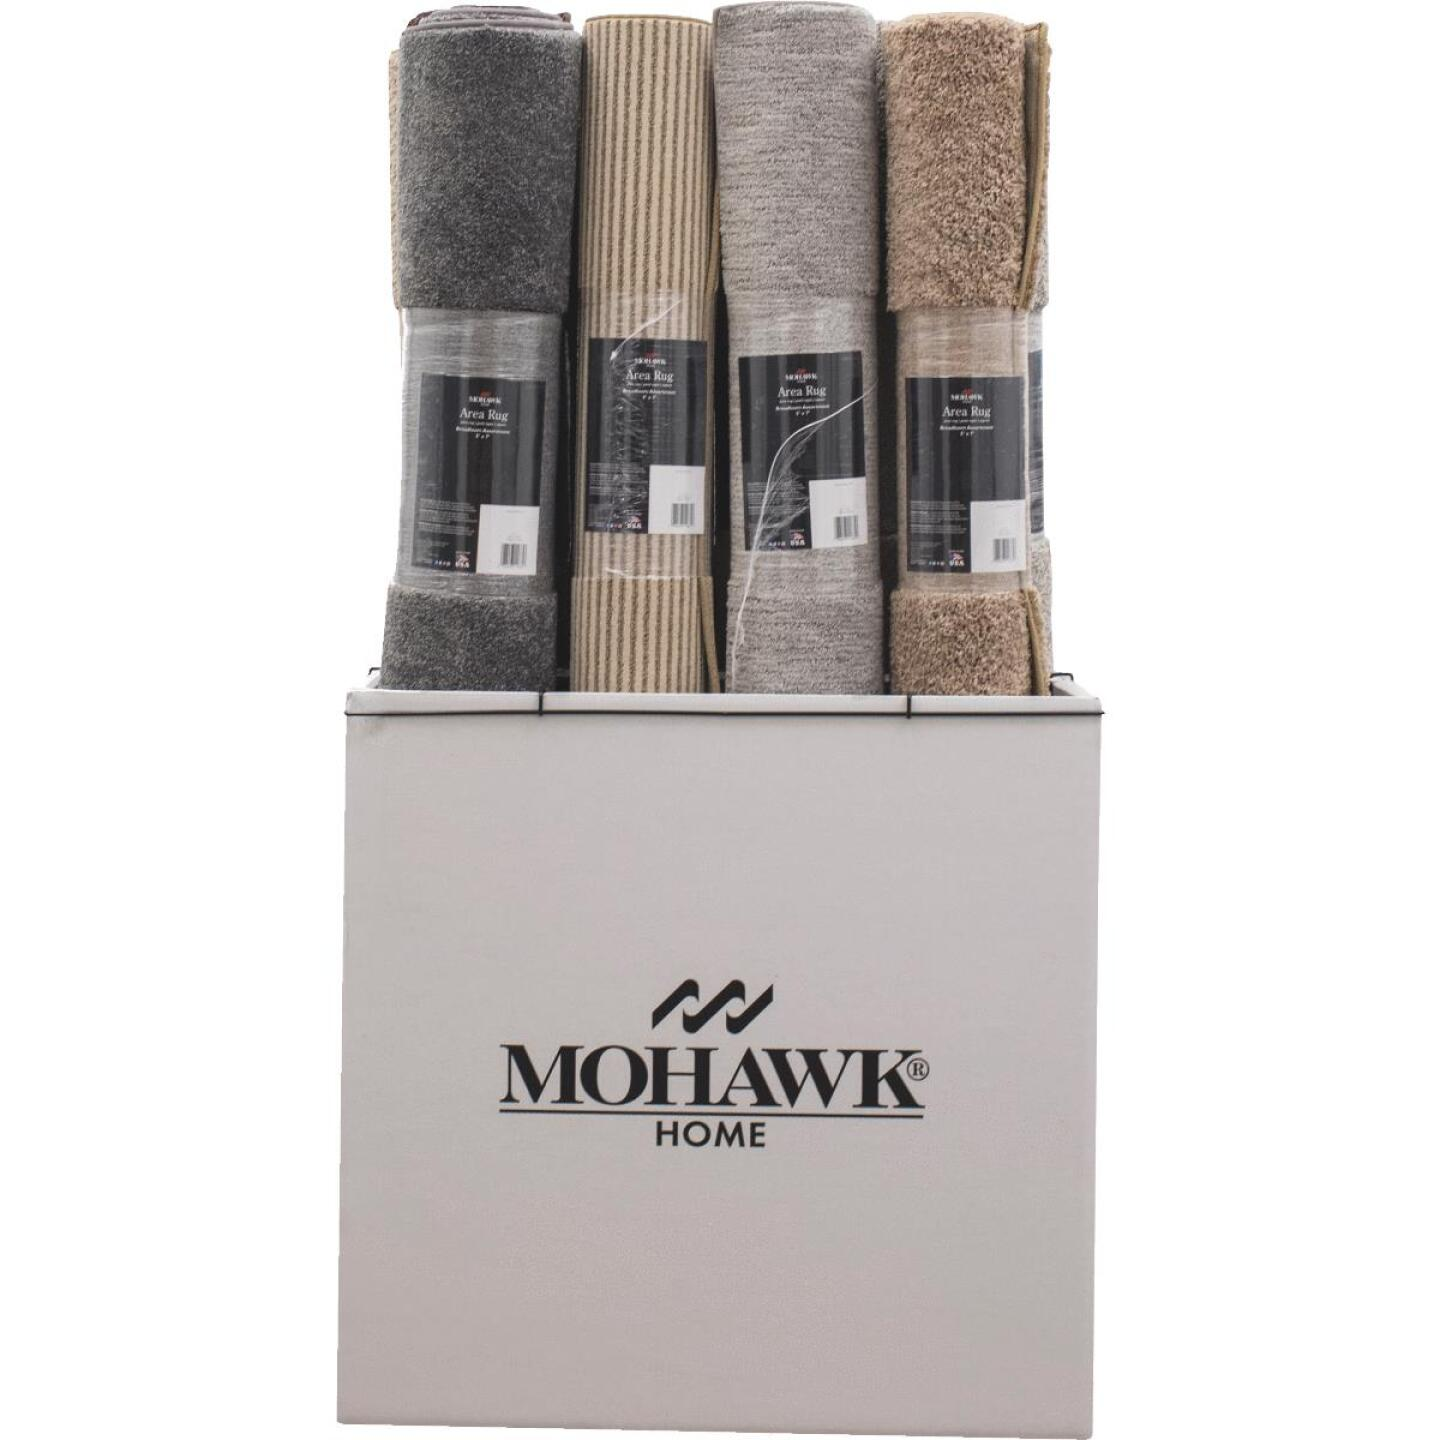 Mohawk Home 5 Ft. x 7 Ft. Assorted Area Rug Remnant Image 3